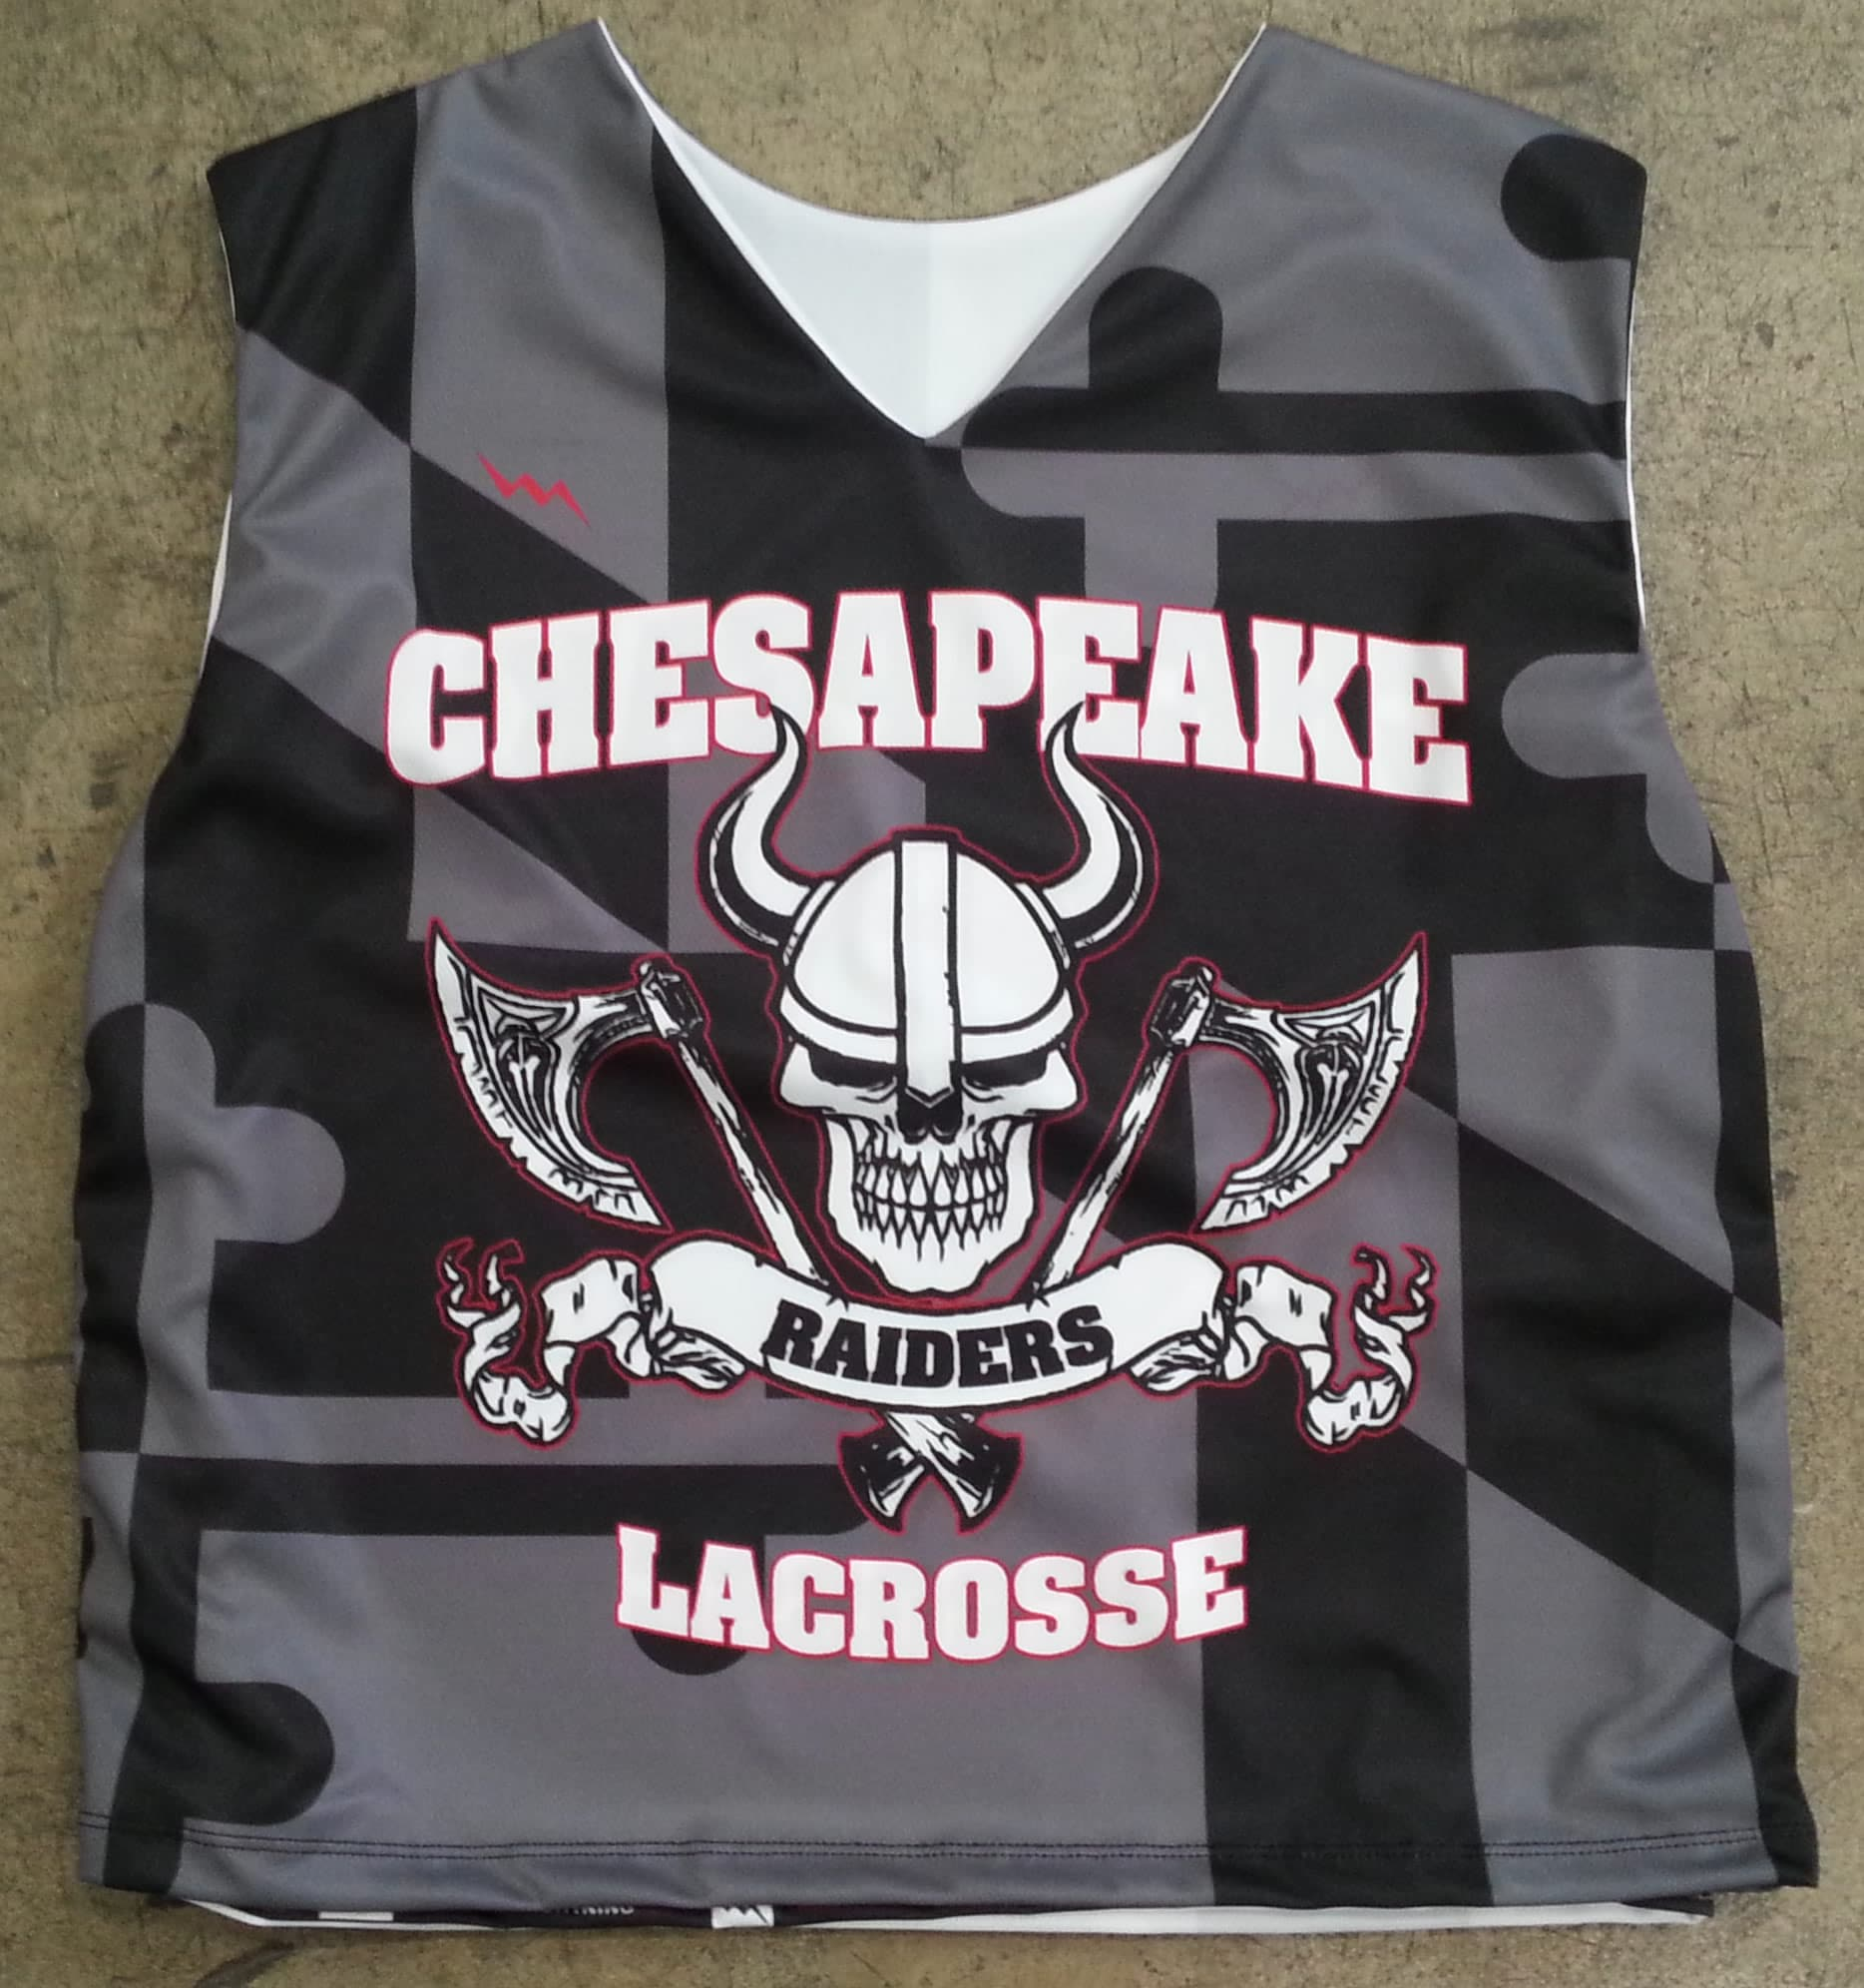 las vegas lacrosse showcase uniforms